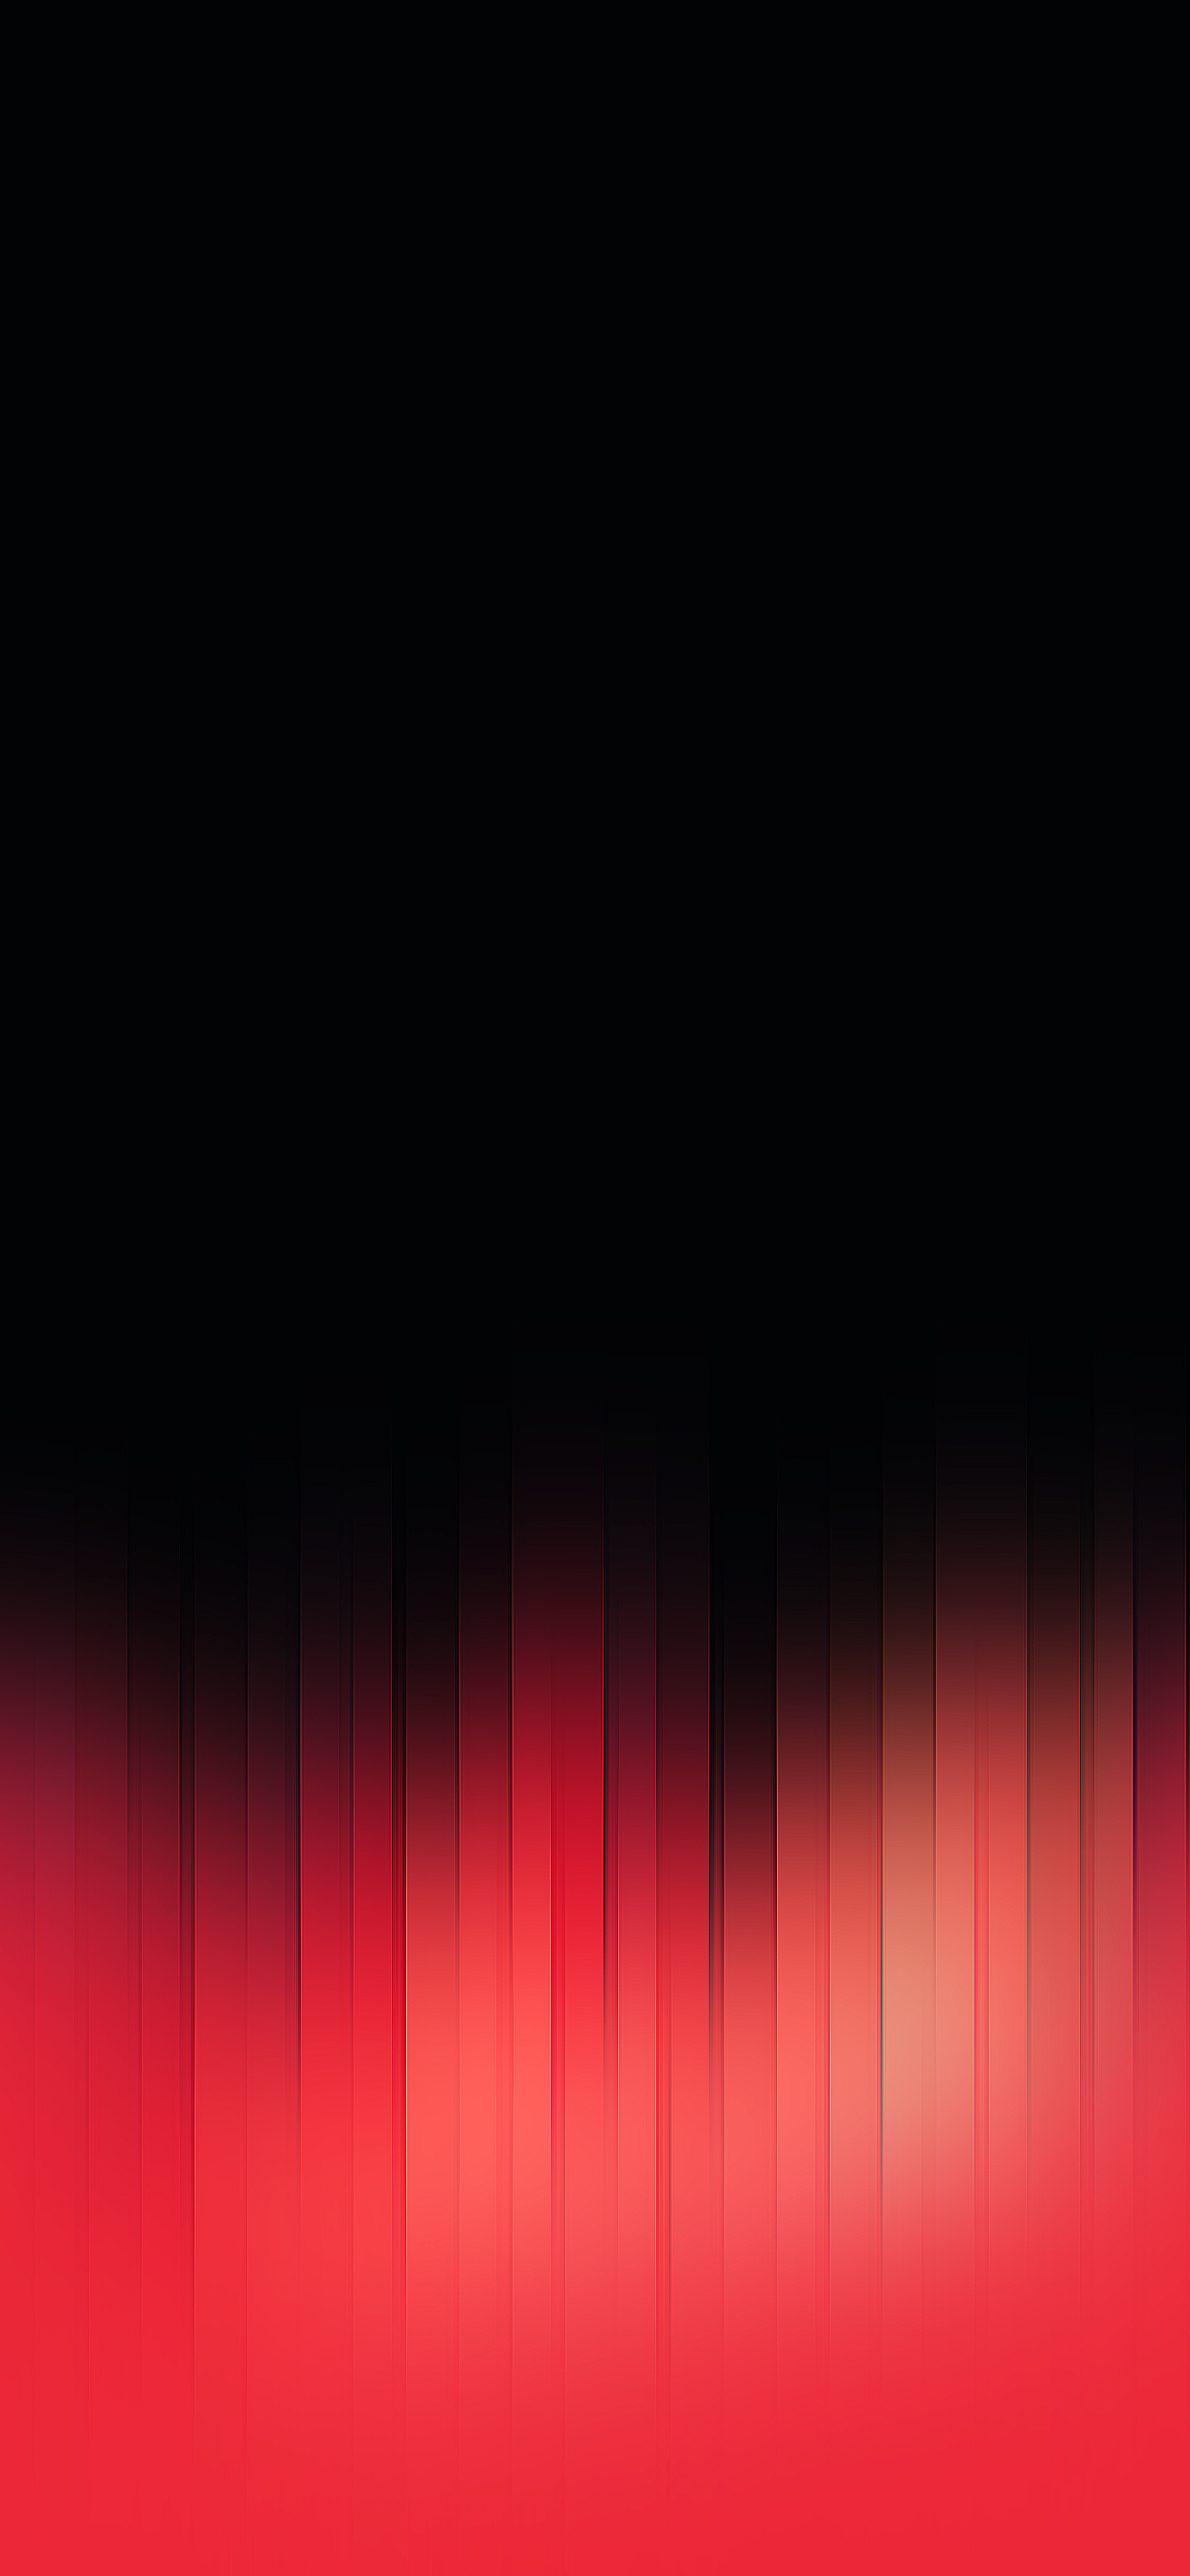 iPhone wallpaper abstract Red Fonds d'écran iPhone du 20/12/2018